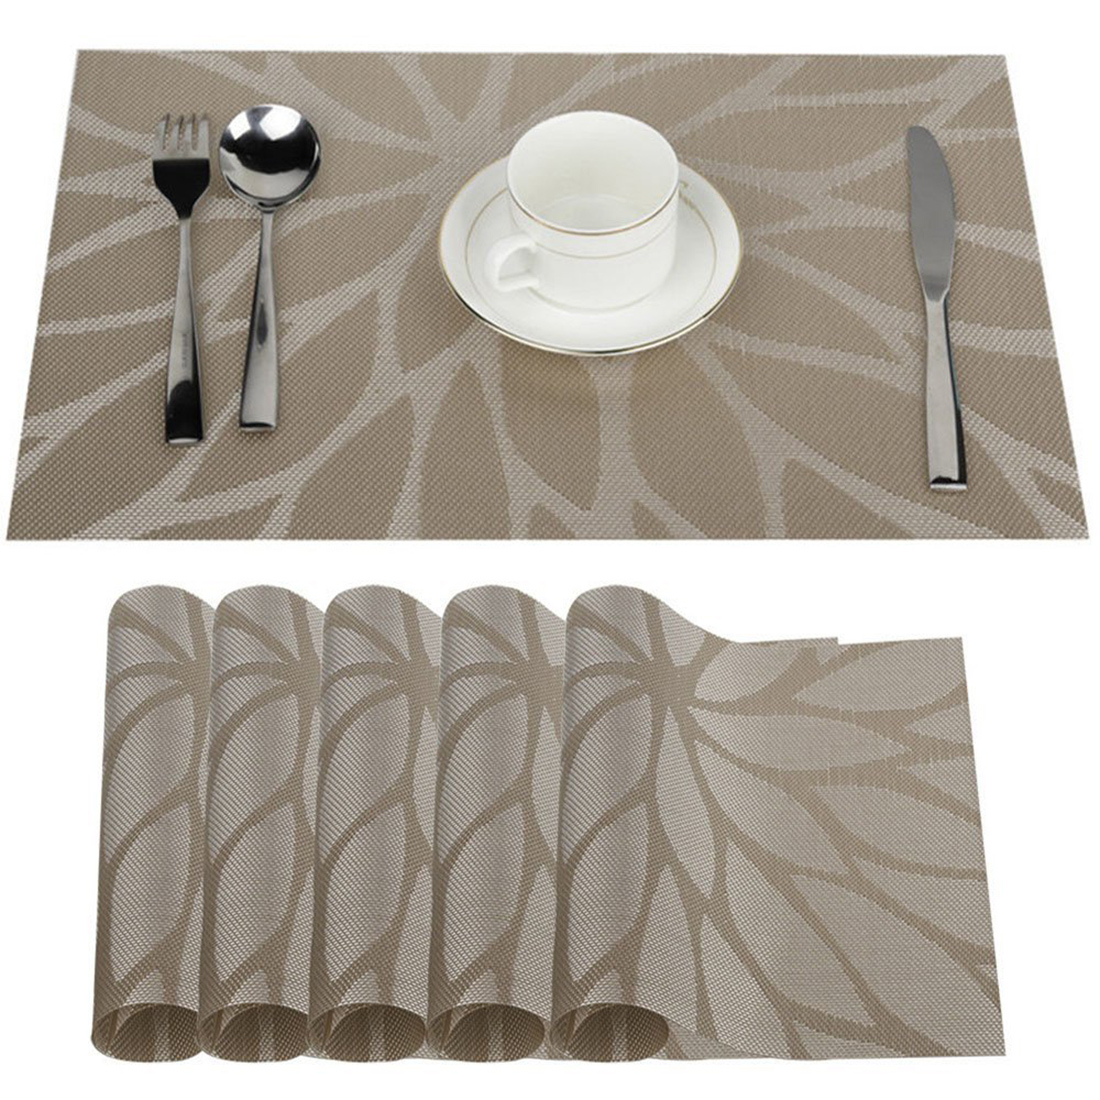 Europe Style Heat Resistant PVC Kitchen Dinning Stripe Table Placemats for Table Mat Tableware Bowl Dish Cup Mats Coaster Pad